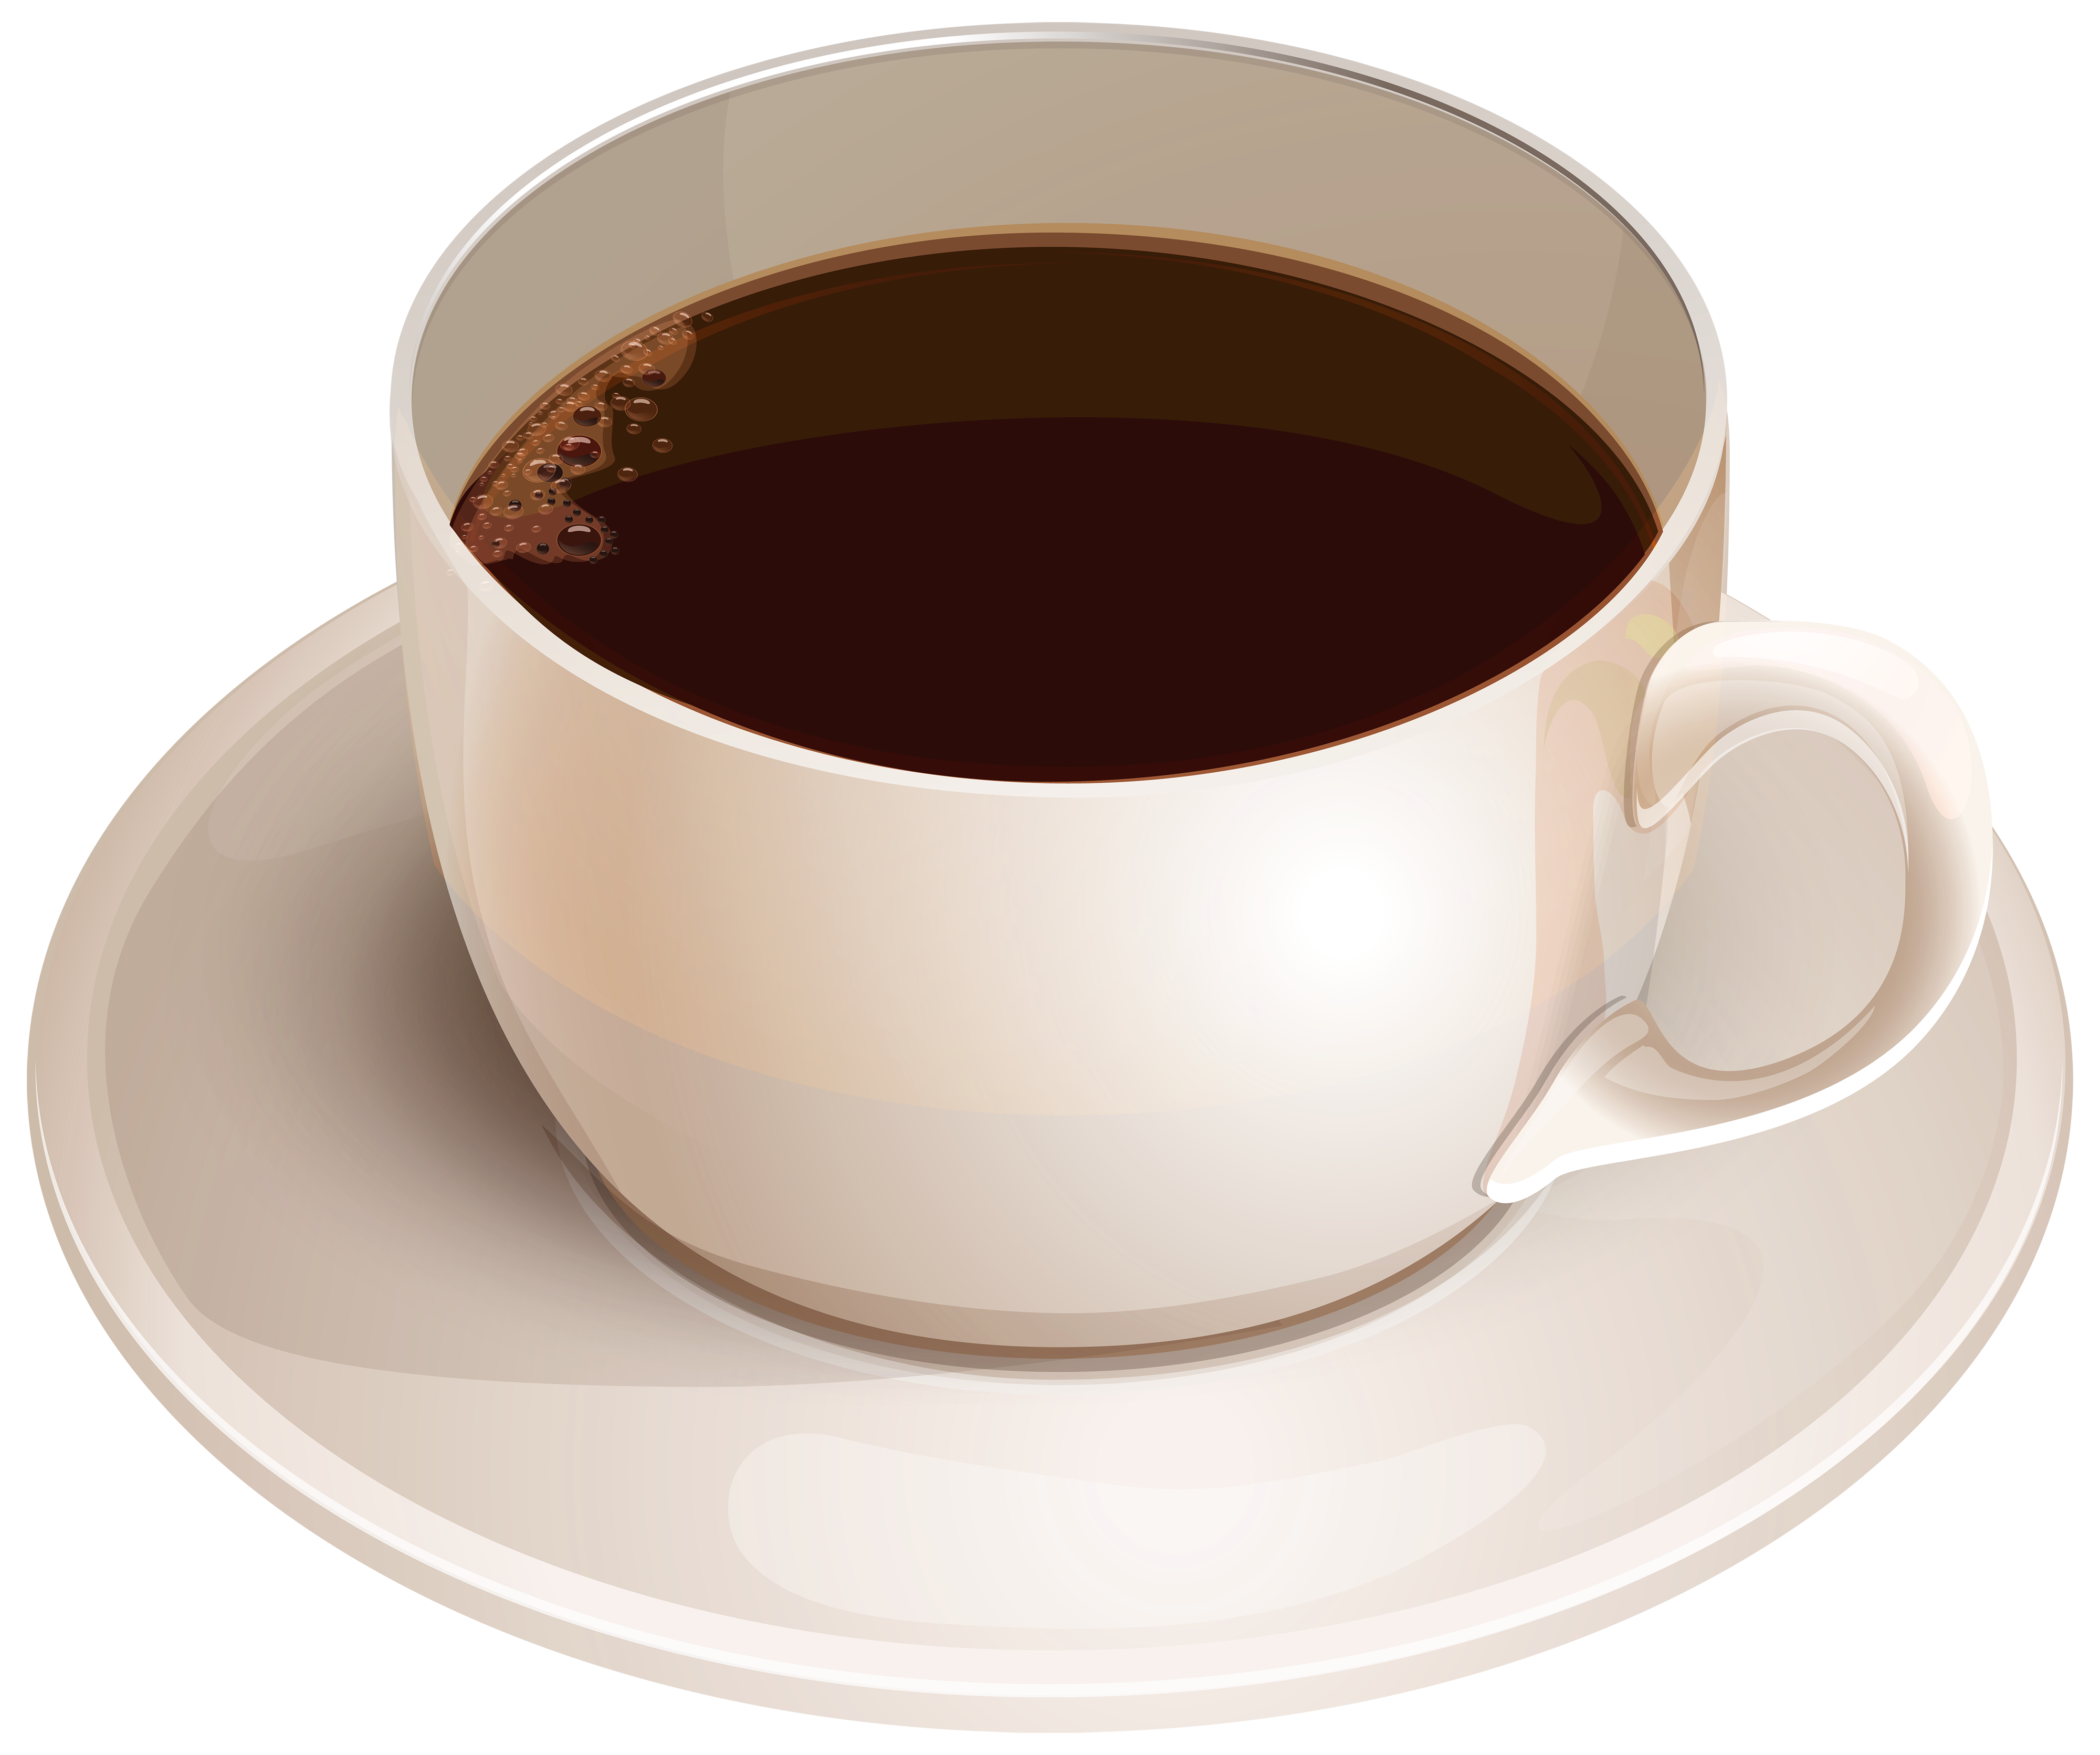 Kopi clipart image freeuse library White Cup with Coffee PNG Clipart - Best WEB Clipart image freeuse library